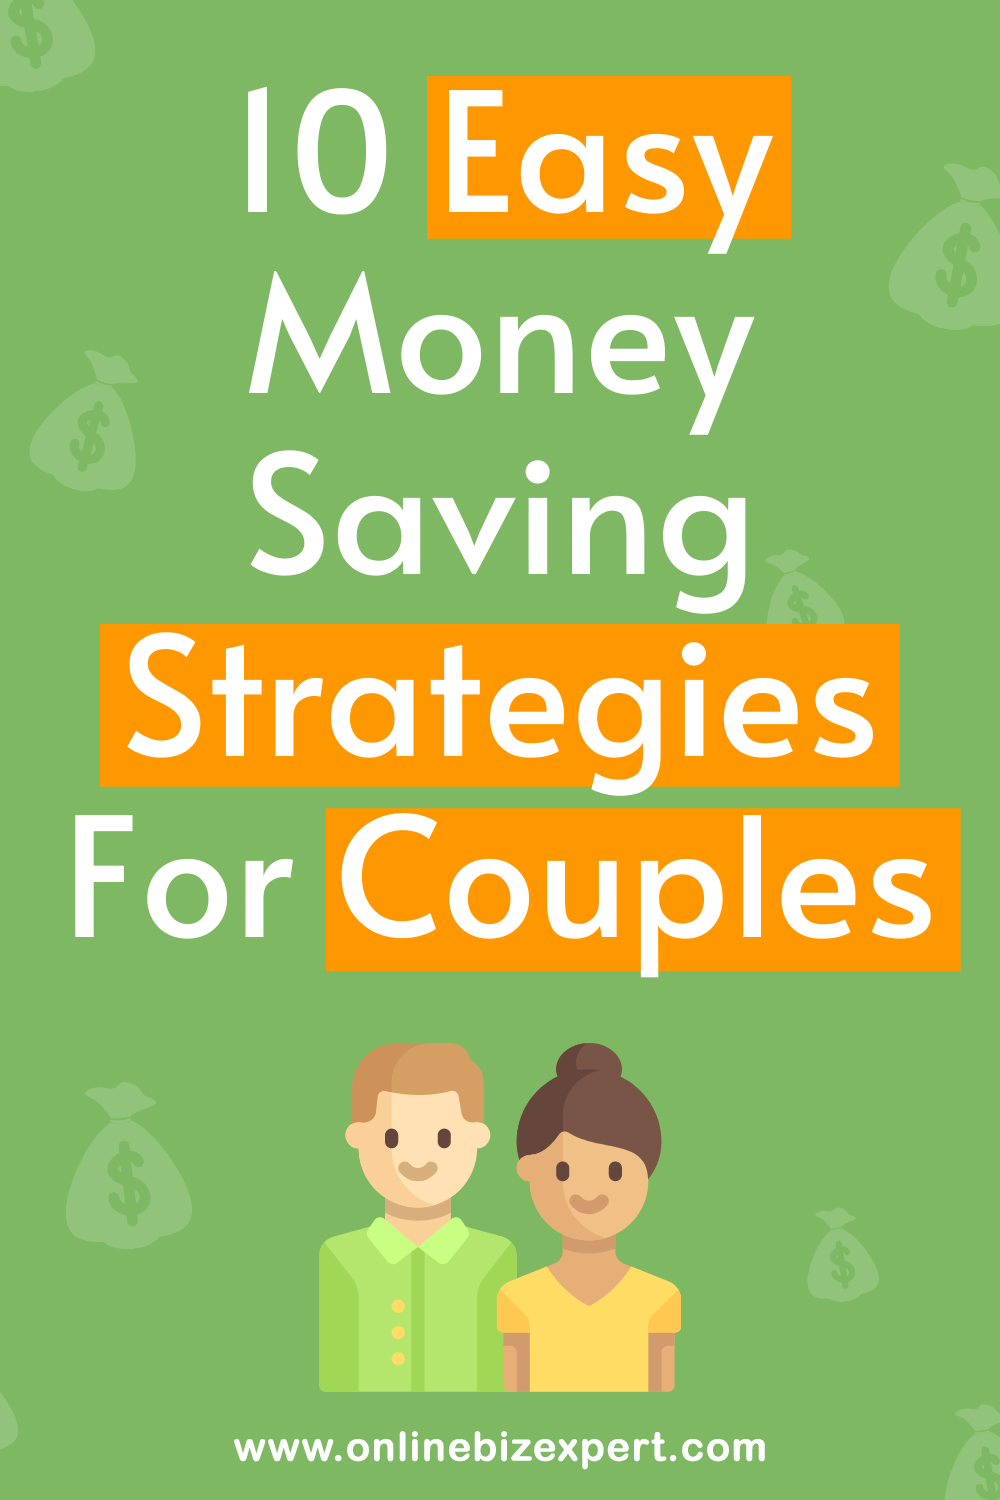 10 Easy Money Saving Strategies For Couples in 2020